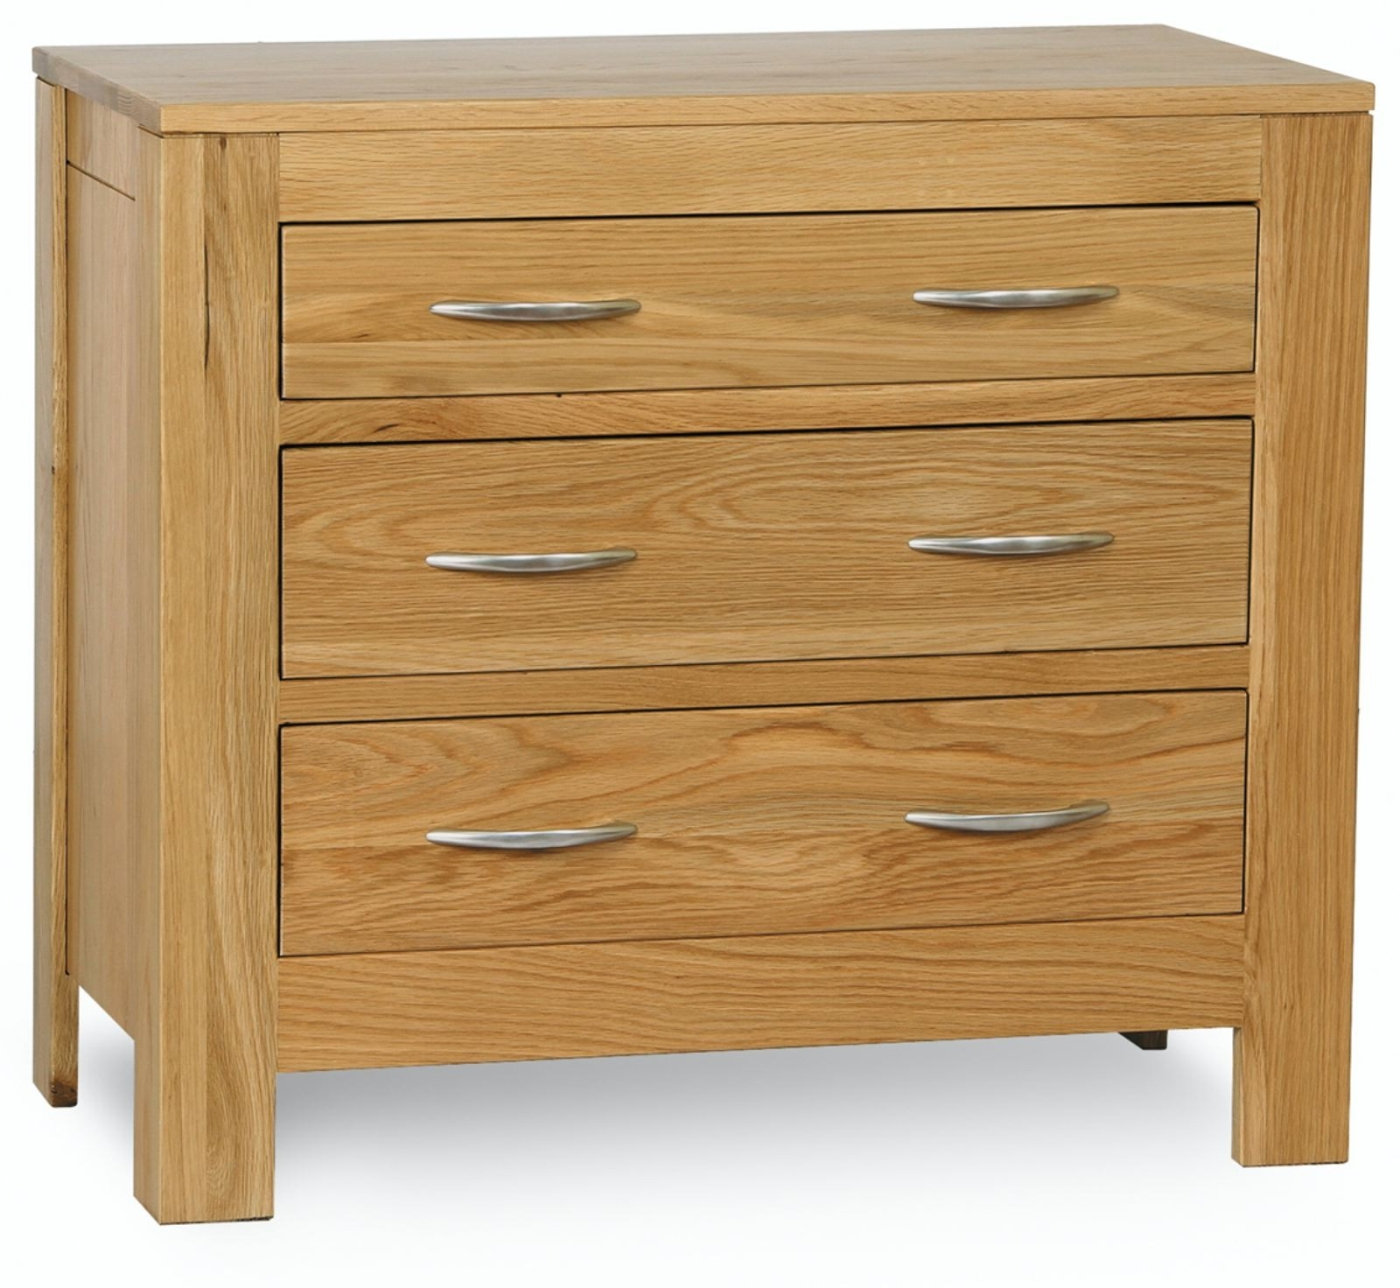 Bedroom Chests Of Drawers: Cotswold Solid Oak Bedroom Furniture Small Chest Of